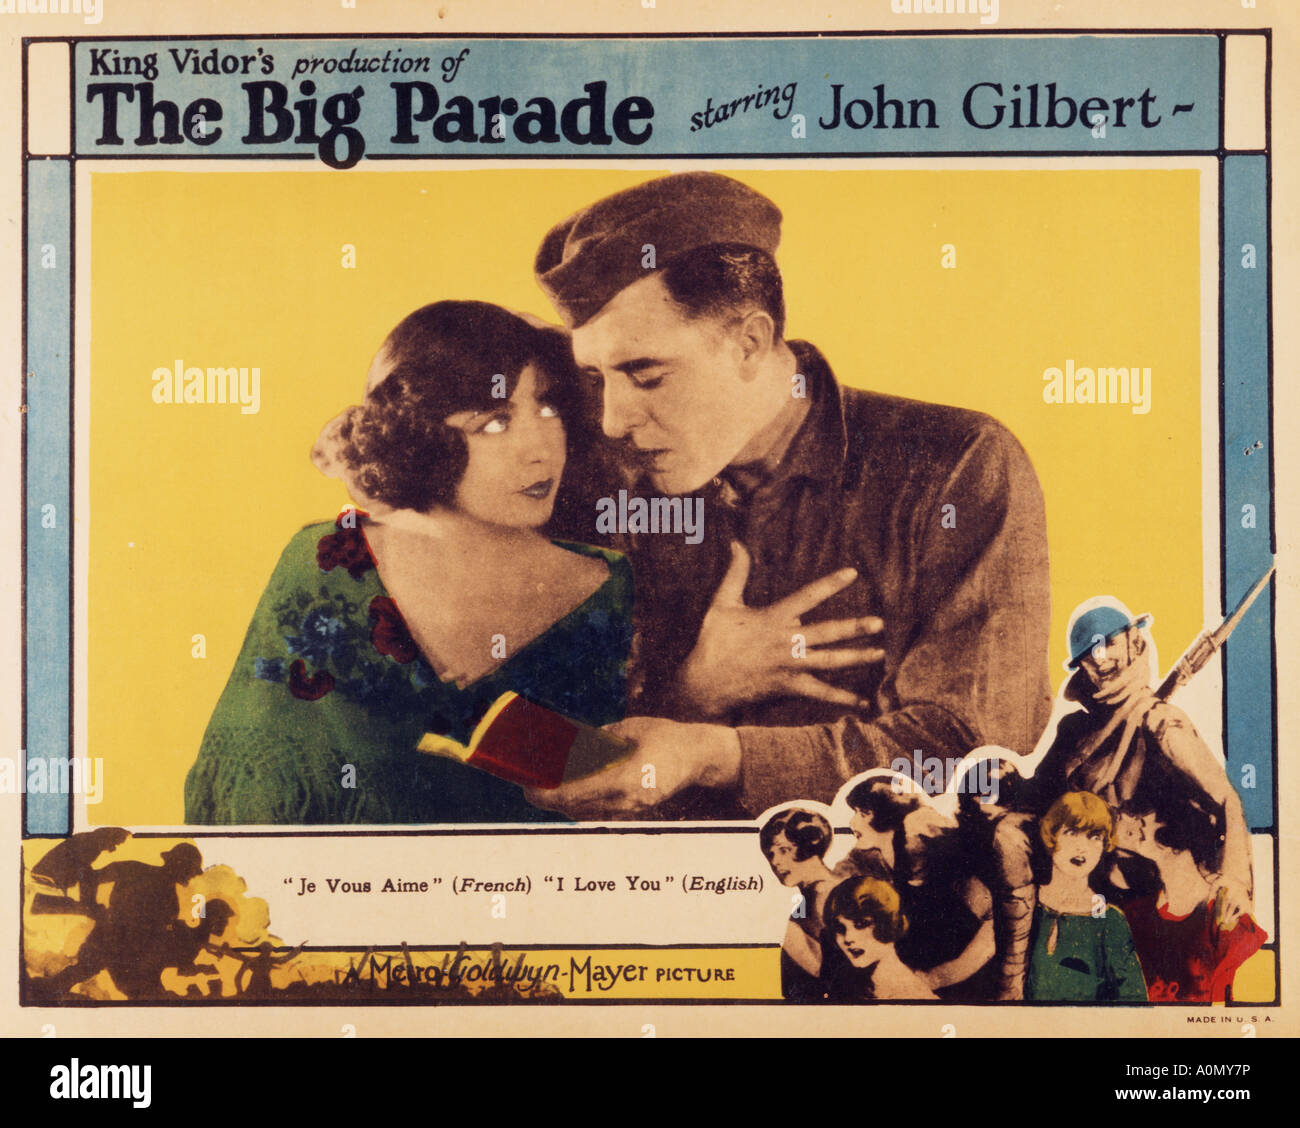 THE BIG PARADE 1925 MGM silent film with John Gilbert and Renee Adoree - Stock Image